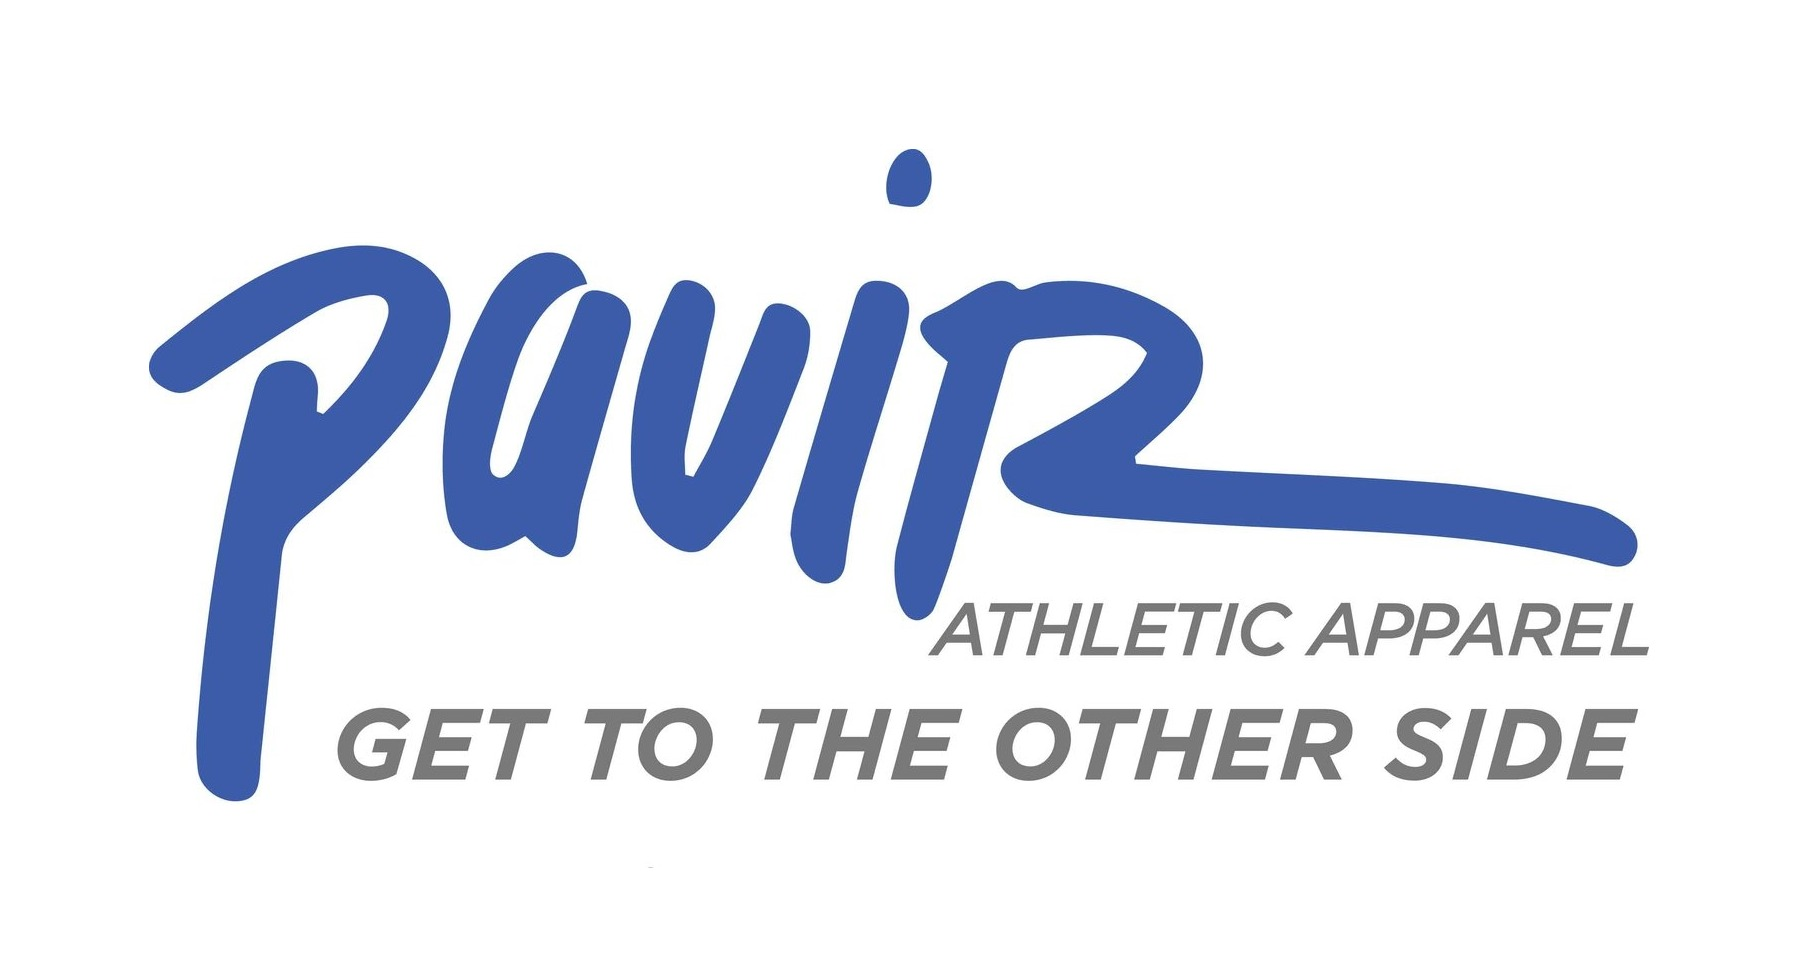 Pauir Athletic Apparel Coupons & Promo codes